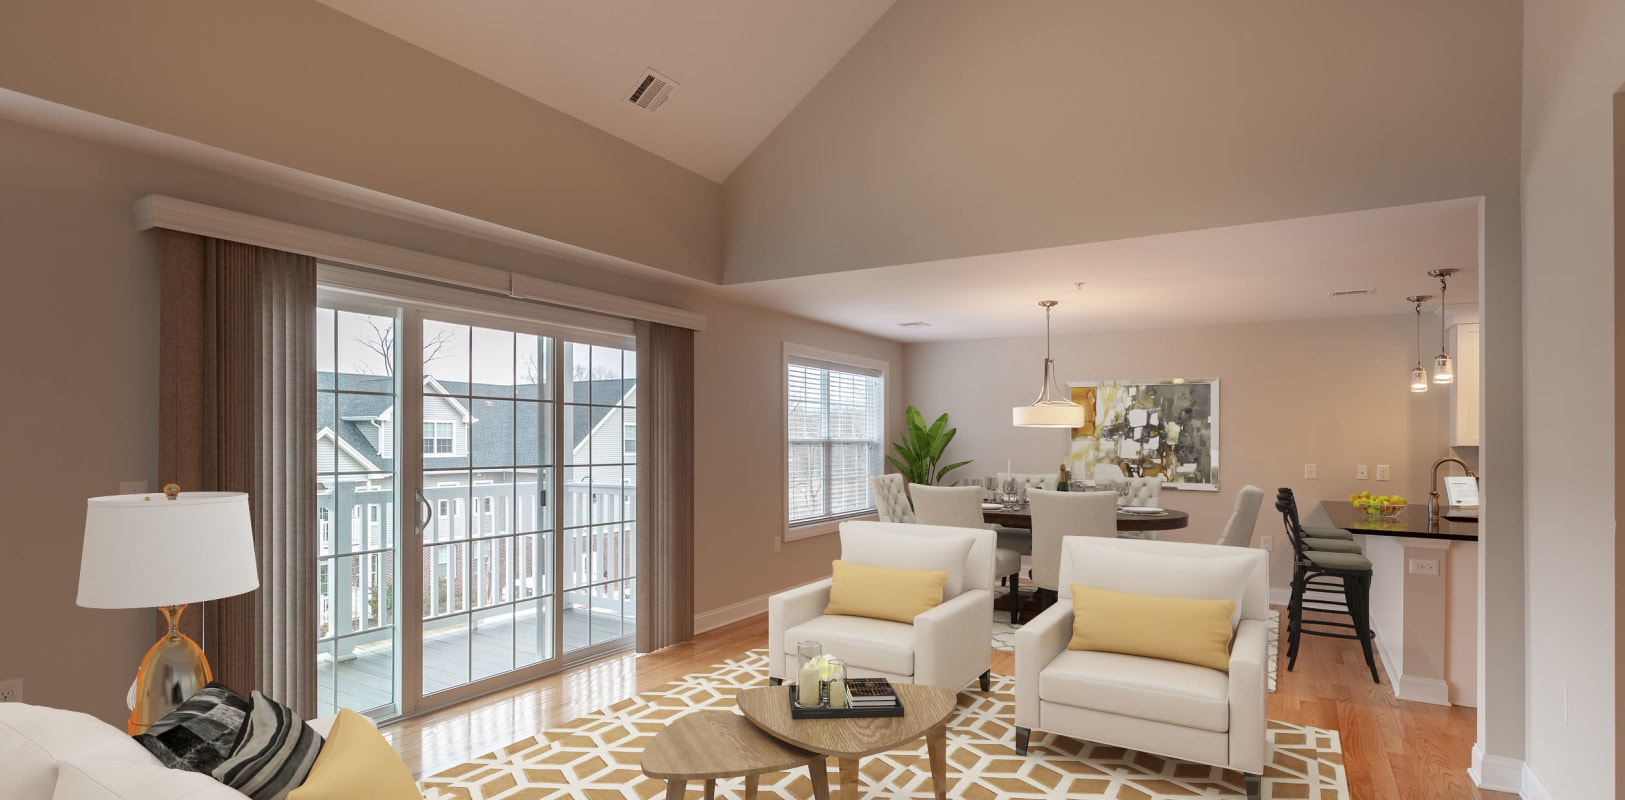 Large living room with lots of light at Zephyr Ridge in Cedar Grove, New Jersey